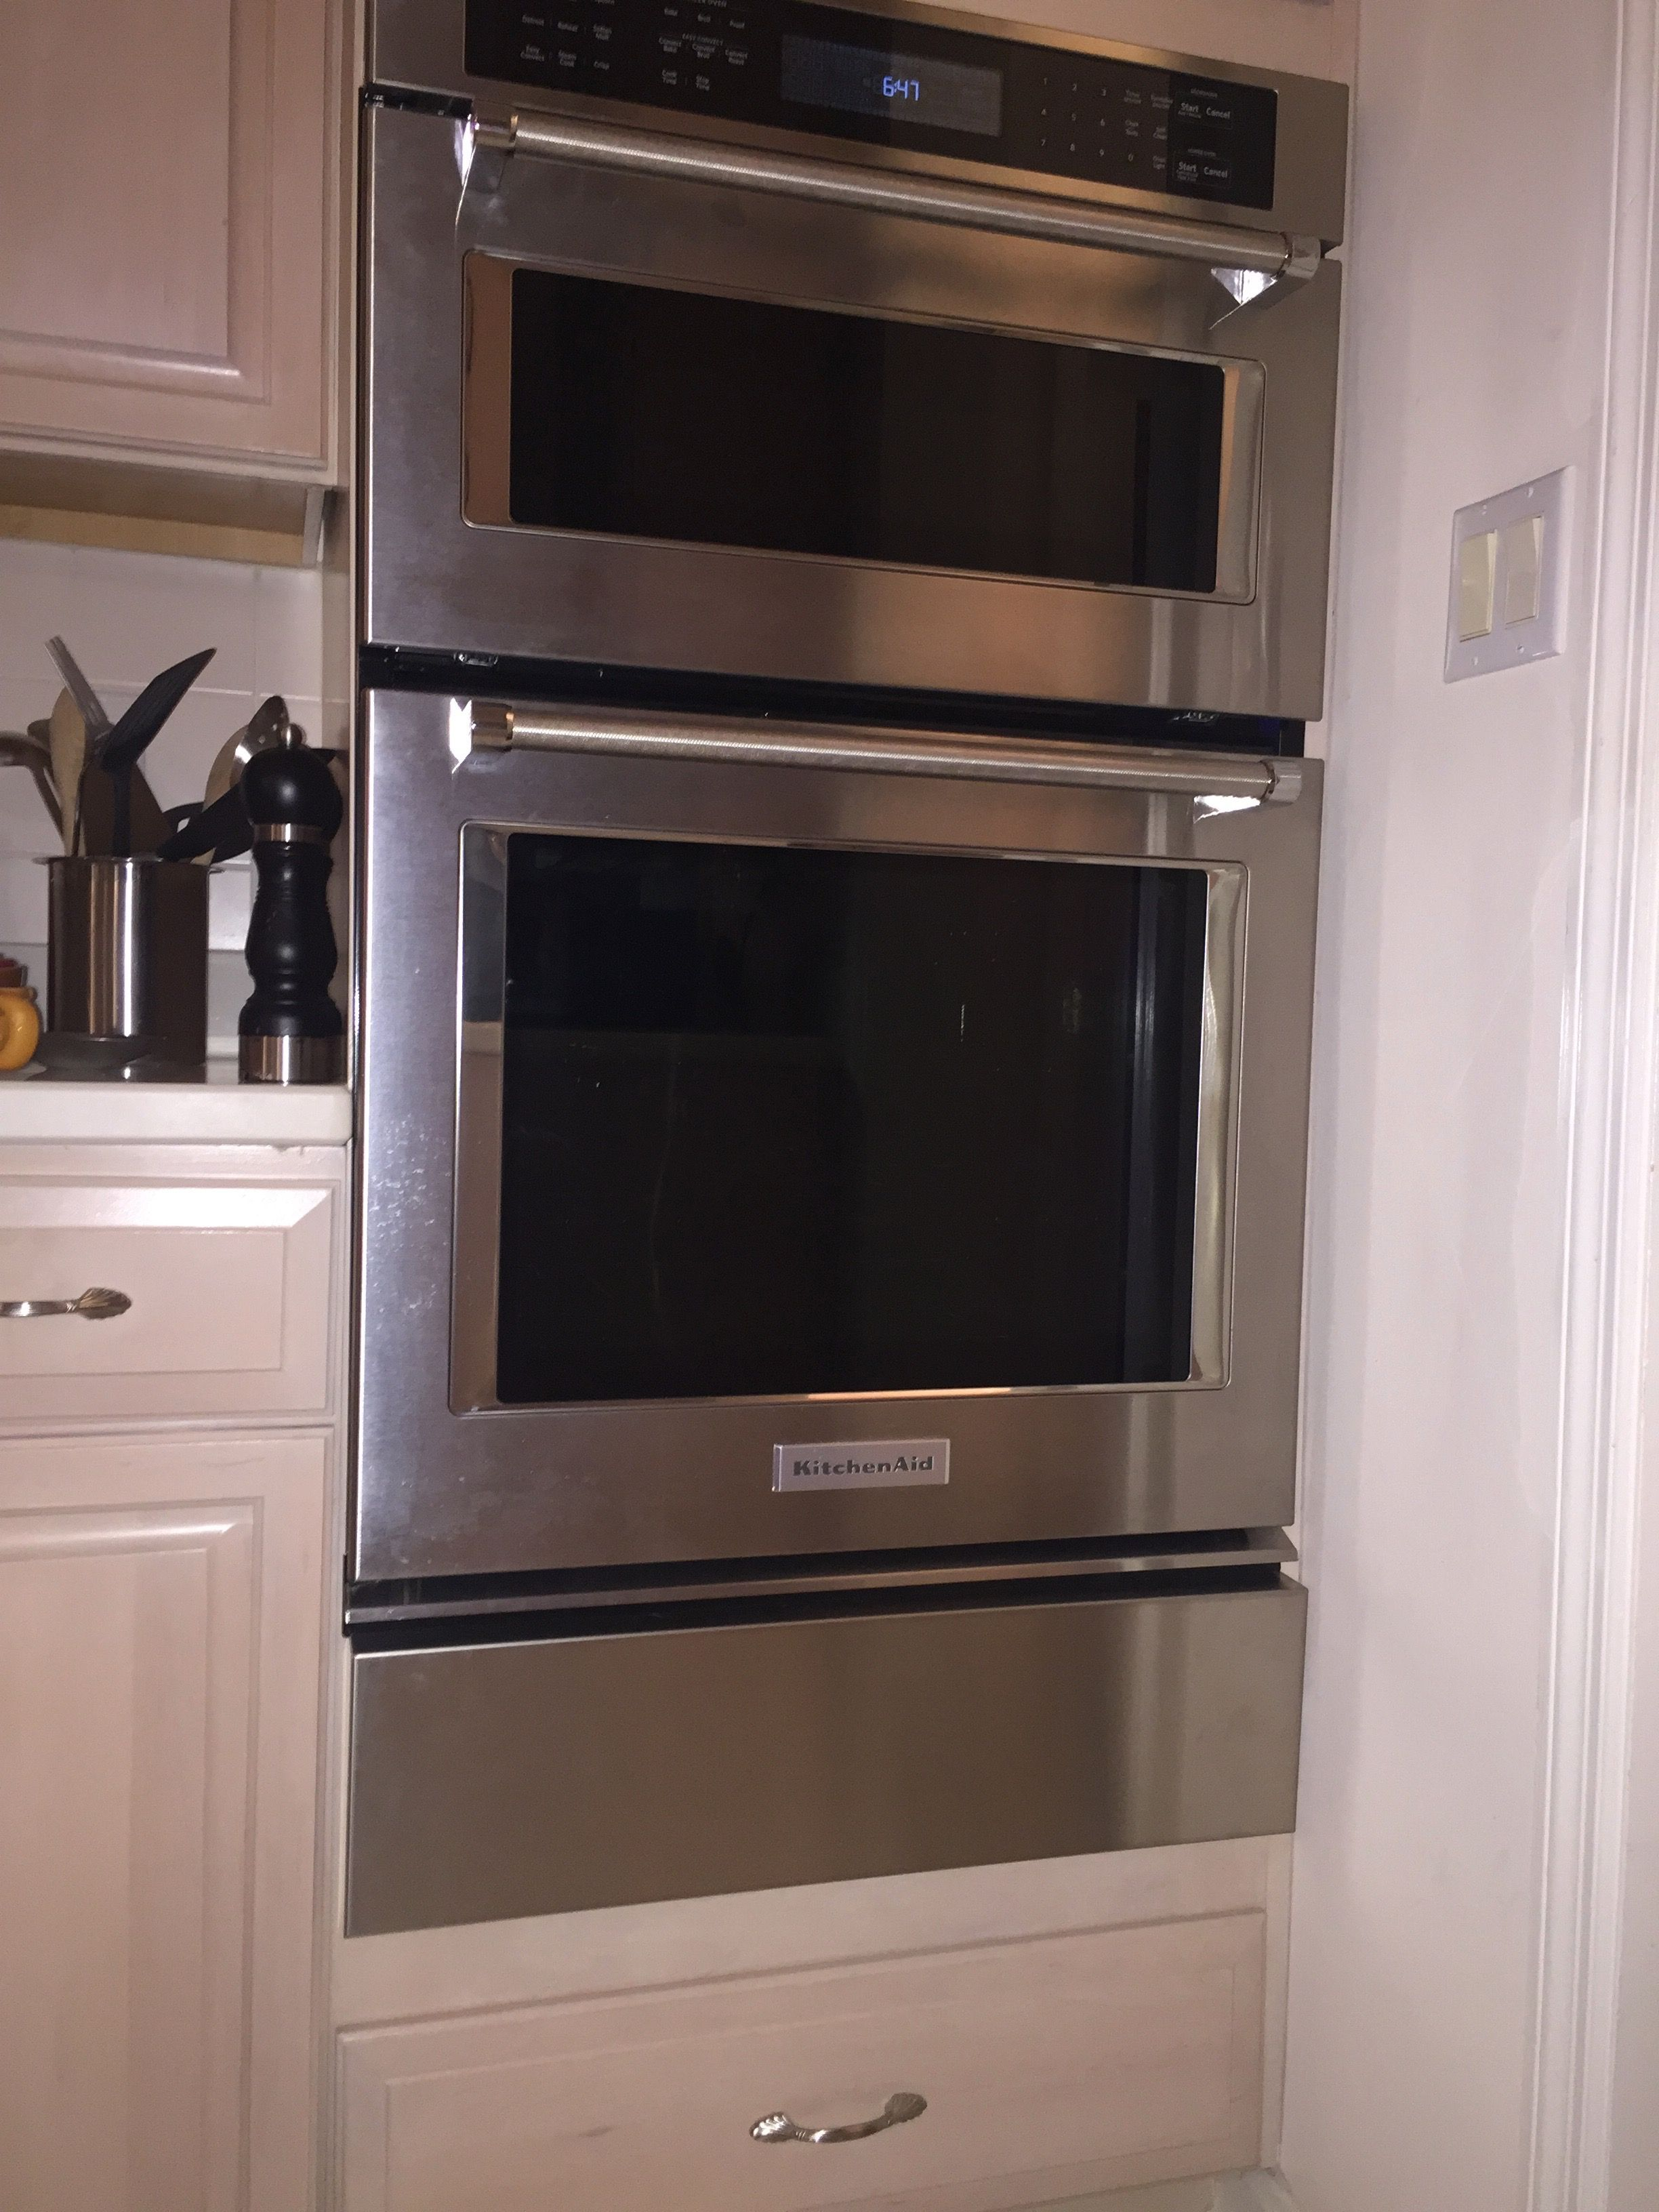 wall oven fillir strip for a 27